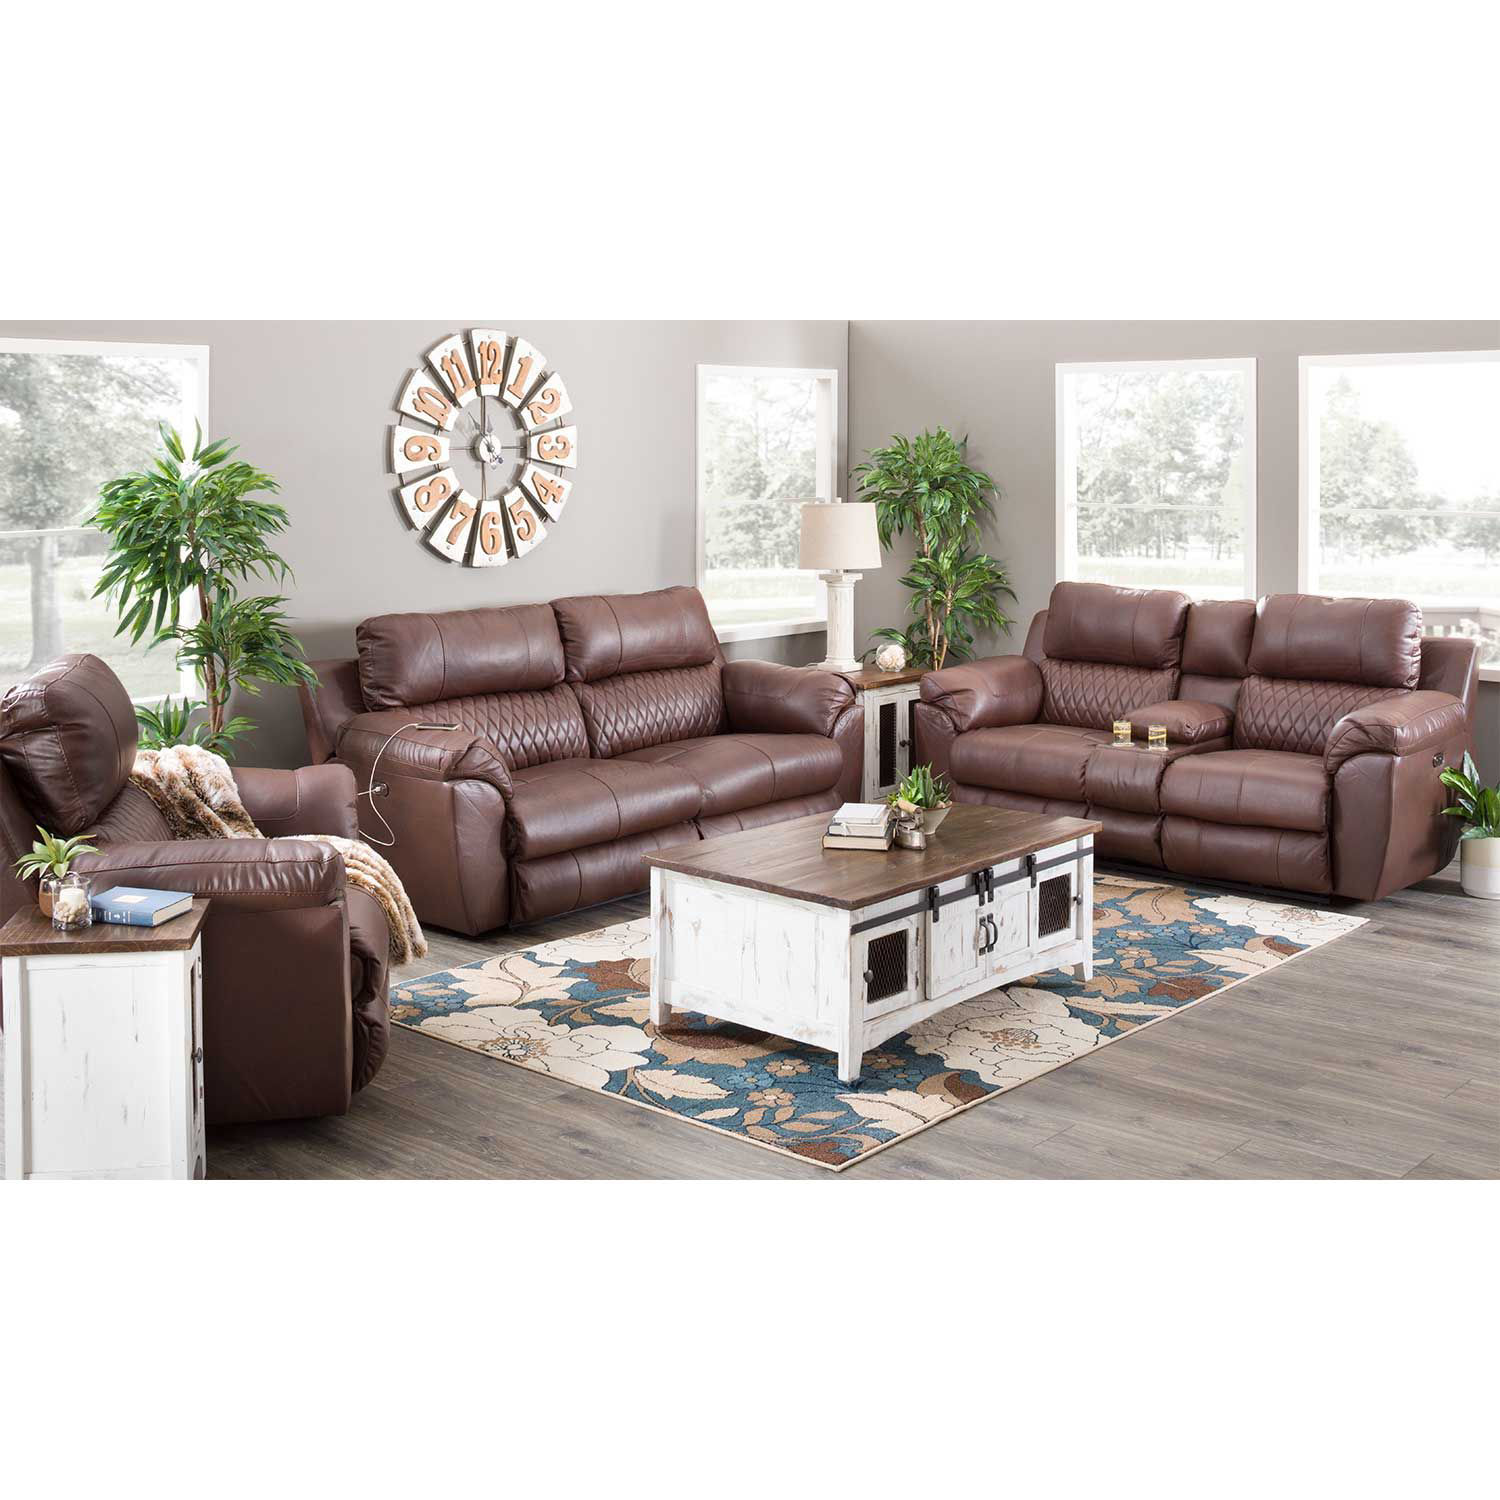 Picture of Sorrento Italian Leather Power Recliner